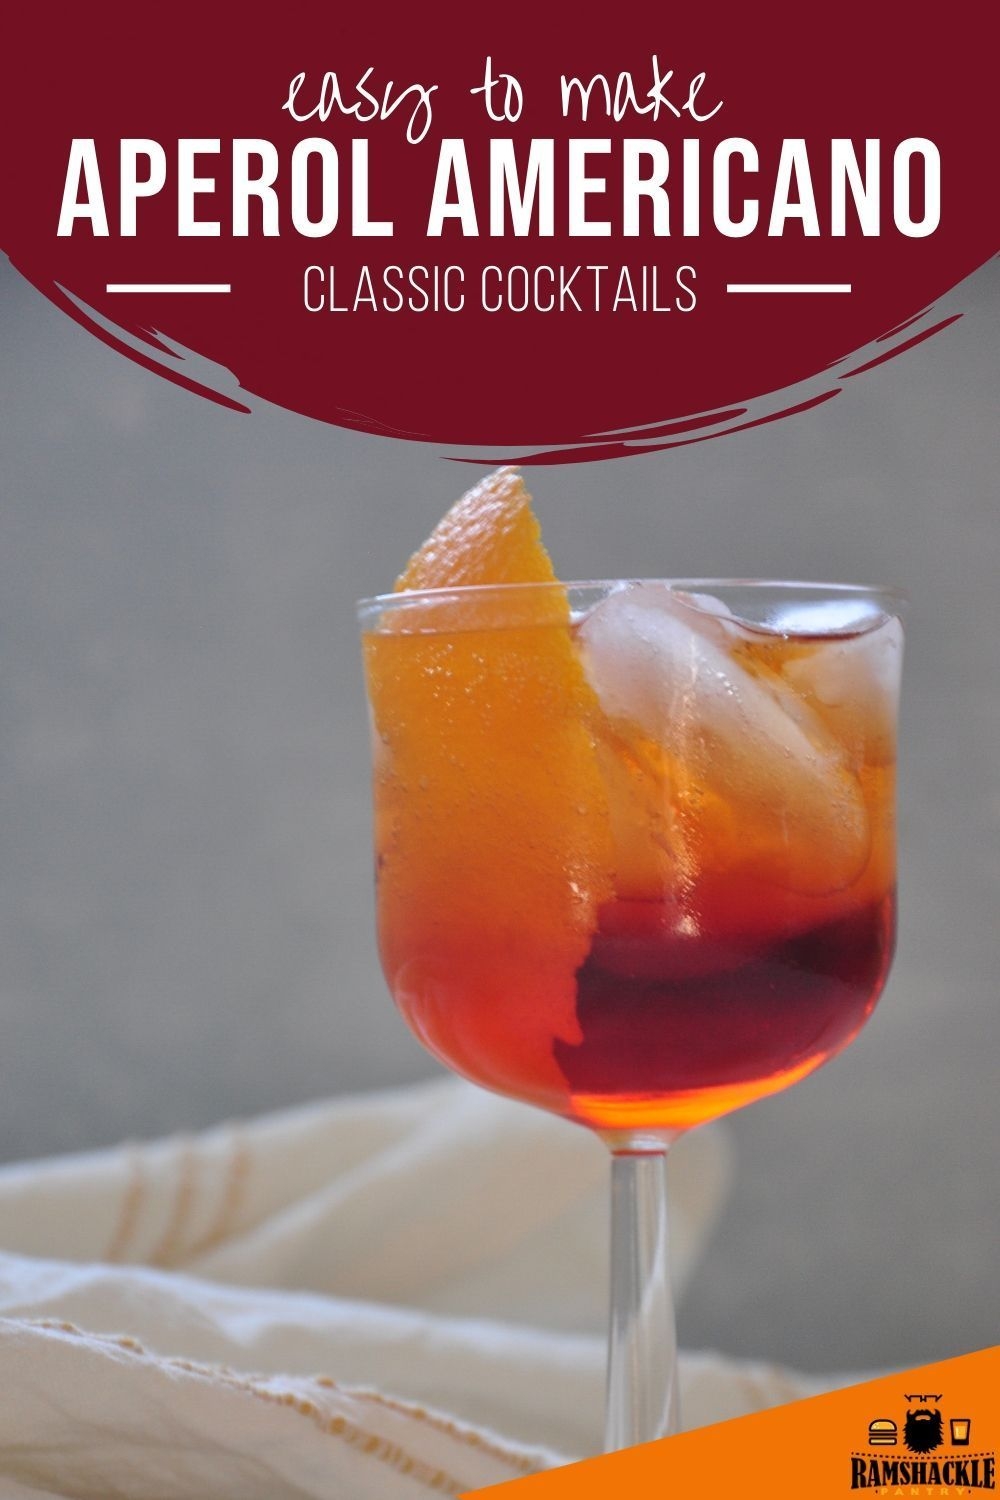 Aperol Americano Cocktail In 2020 Summer Drink Recipes Classic Cocktail Recipes Mixed Drinks Recipes